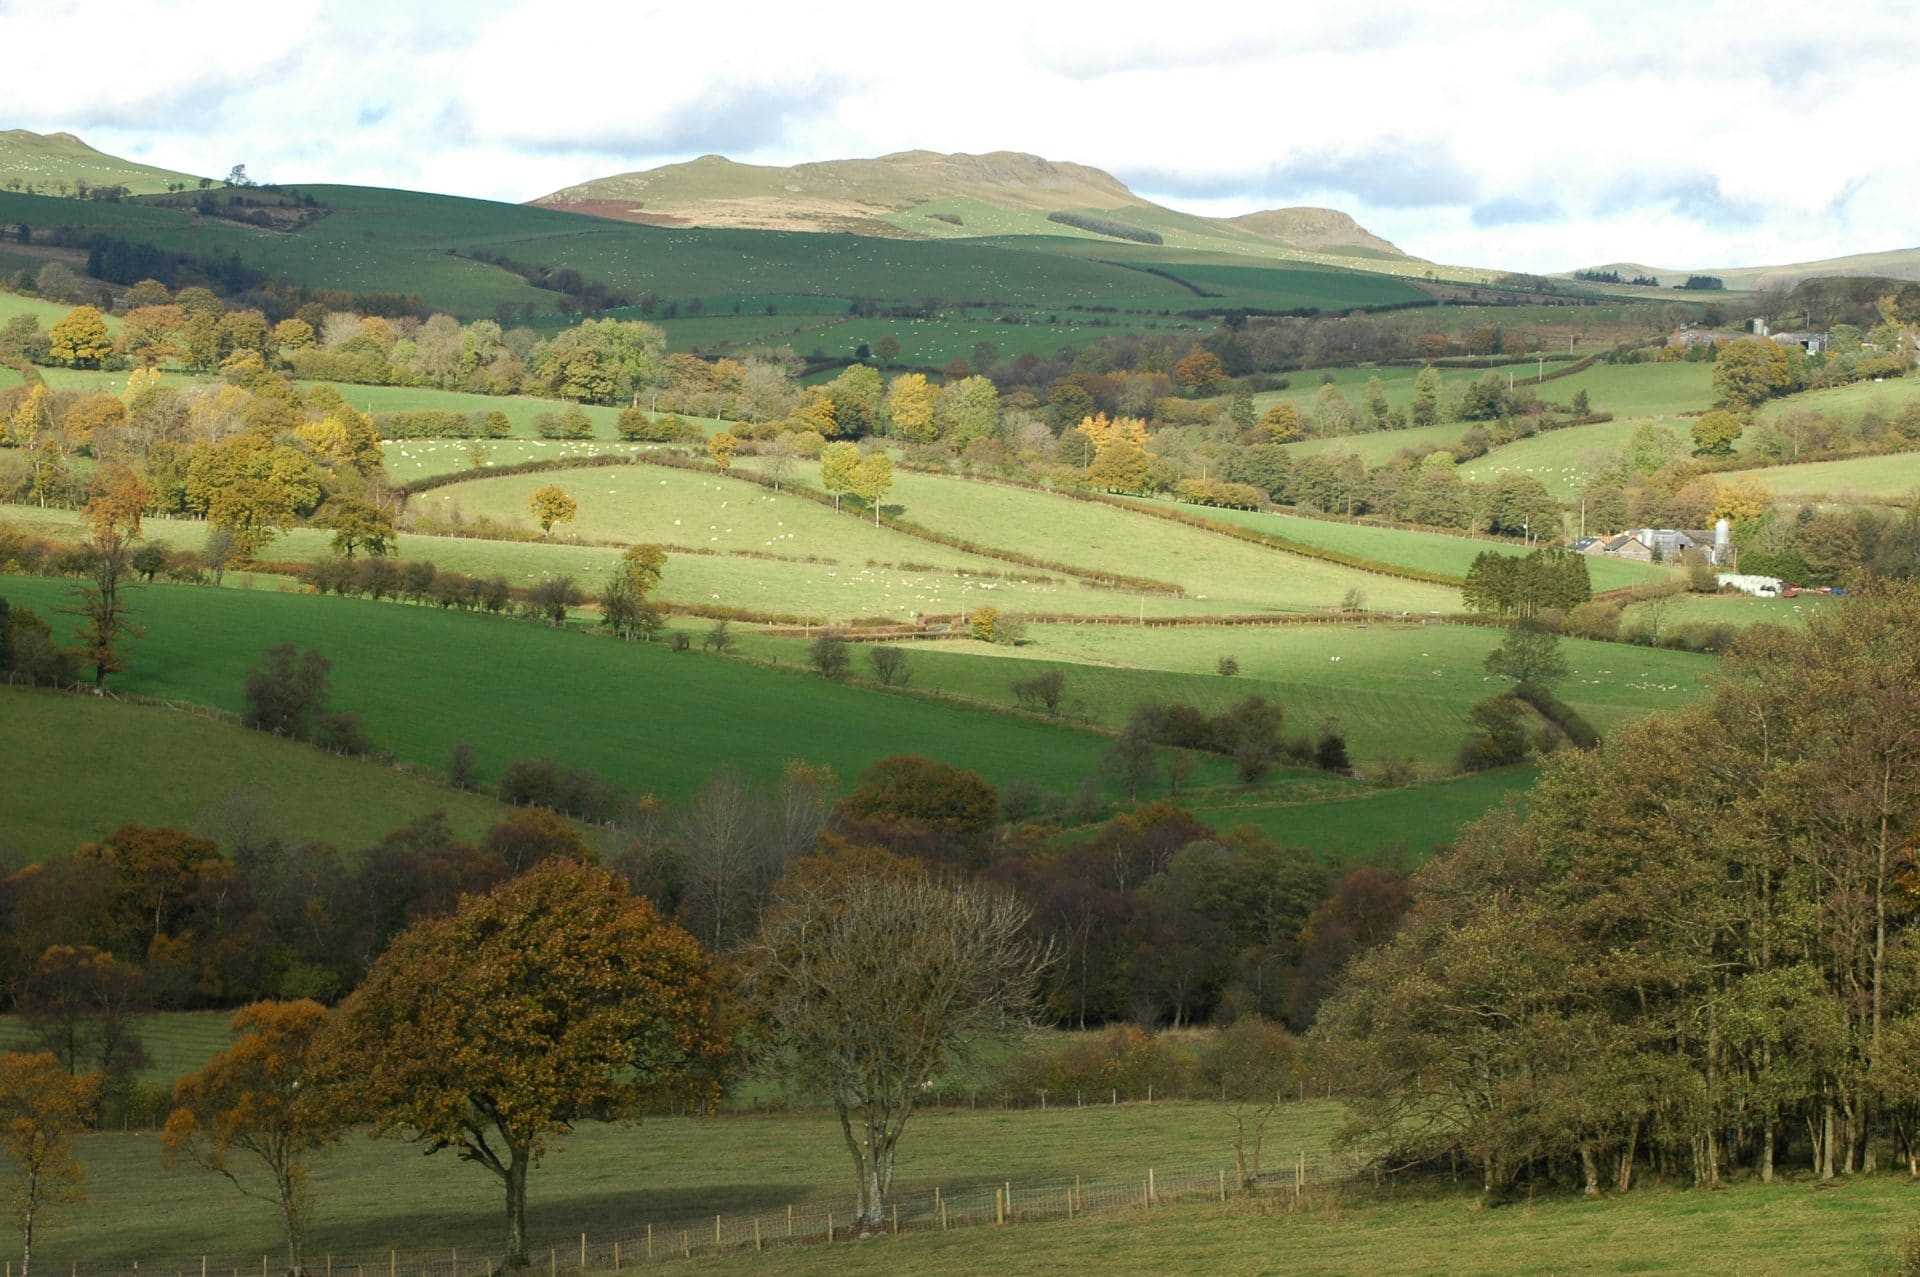 Llandegley Rocks: this view could be obliterated by the proposed seven 110-metre-high wind turbines. Photo: Diana Hulton